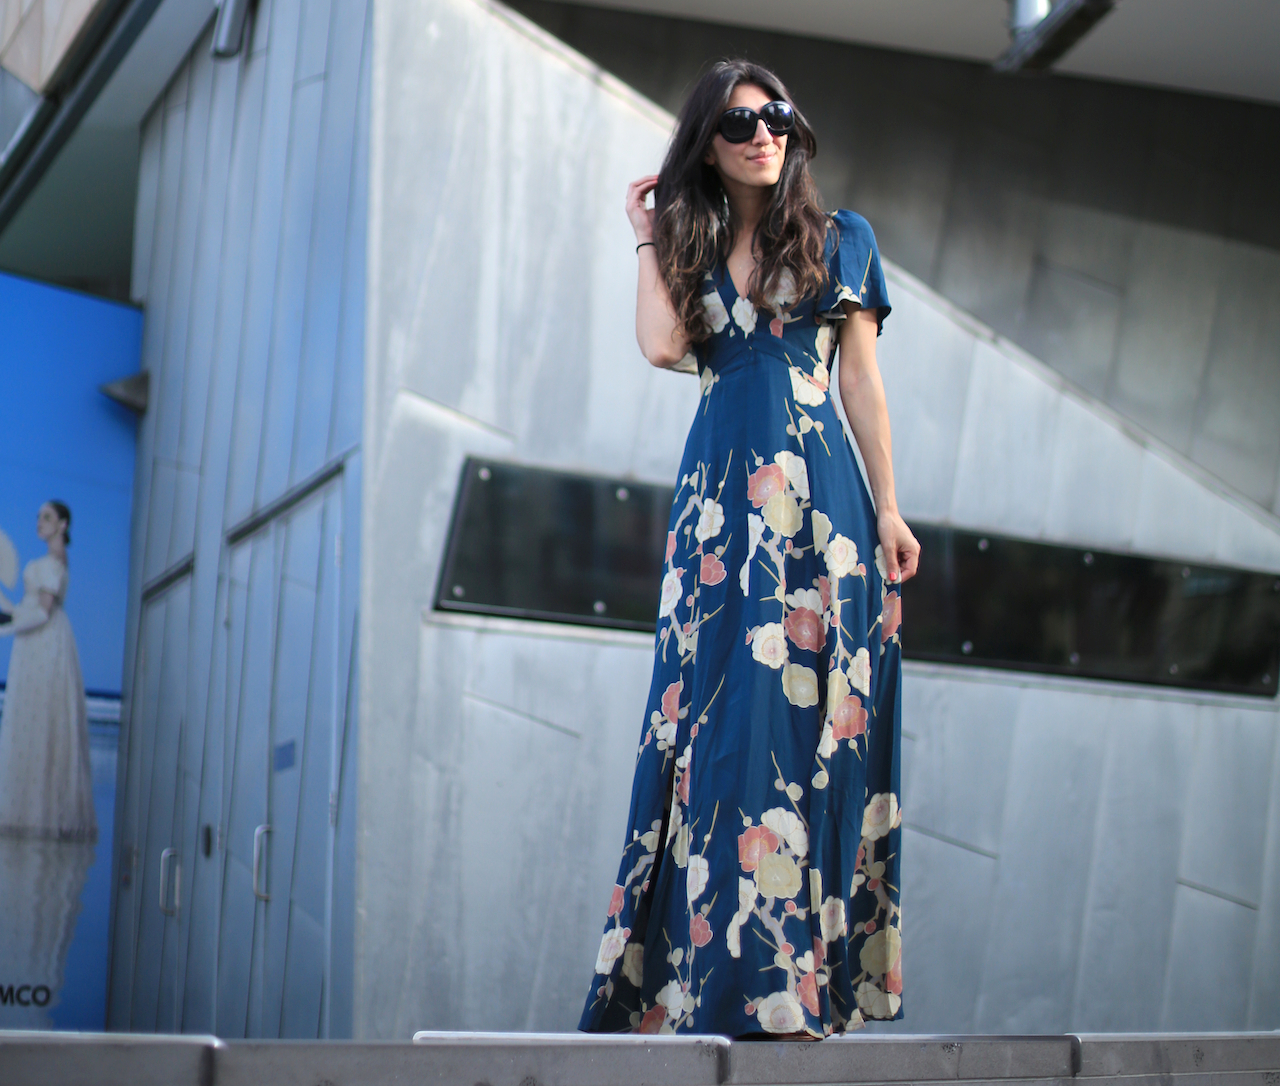 ASOS WEDDING Floral Fantasy Flutter-Sleeve Dress with Kimono Sleeves | Federation Square - Melbourne, Australia